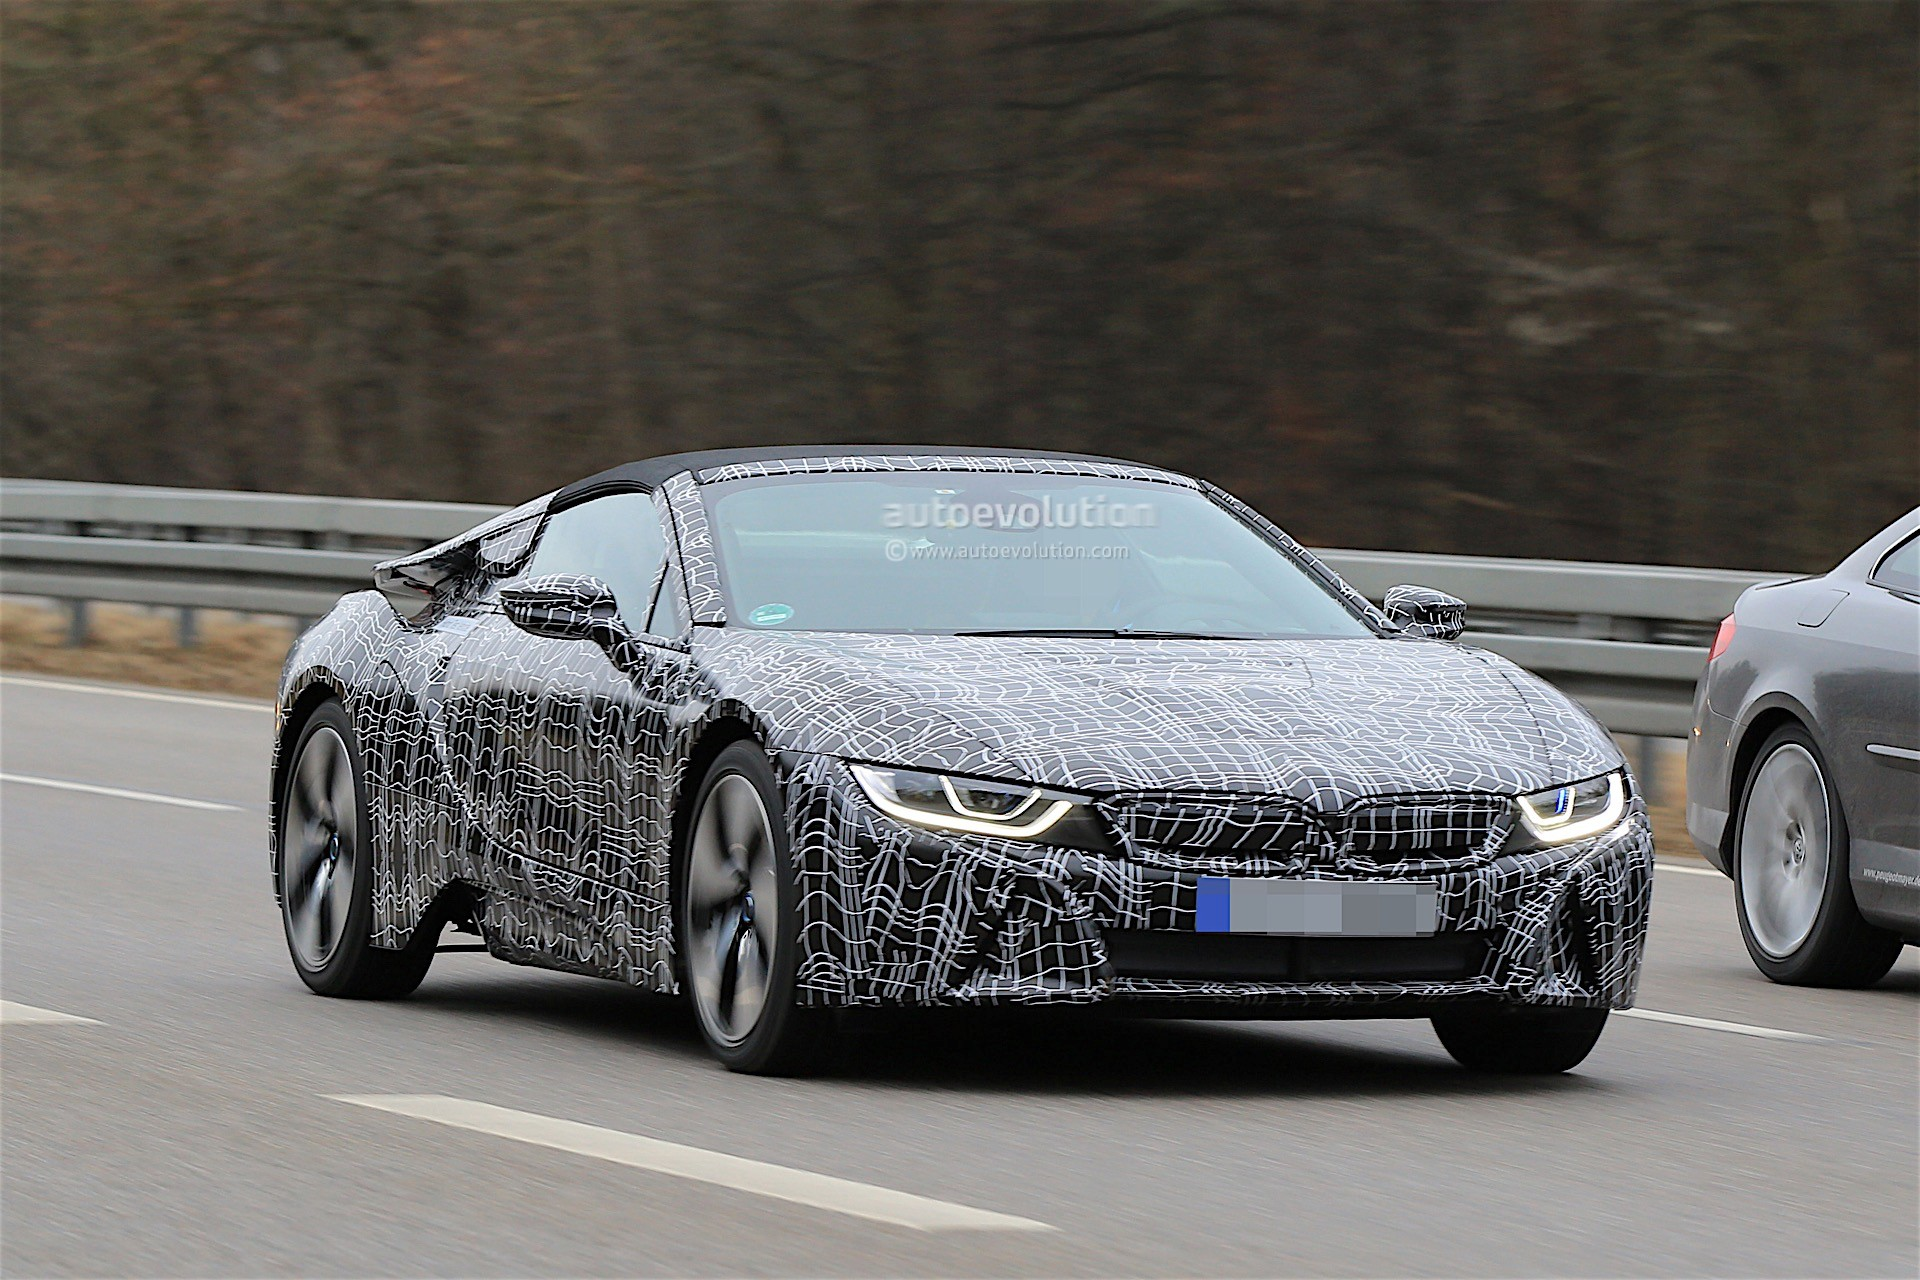 2018 Bmw I8 Roadster Teased Once More Ahead Of L A Premiere